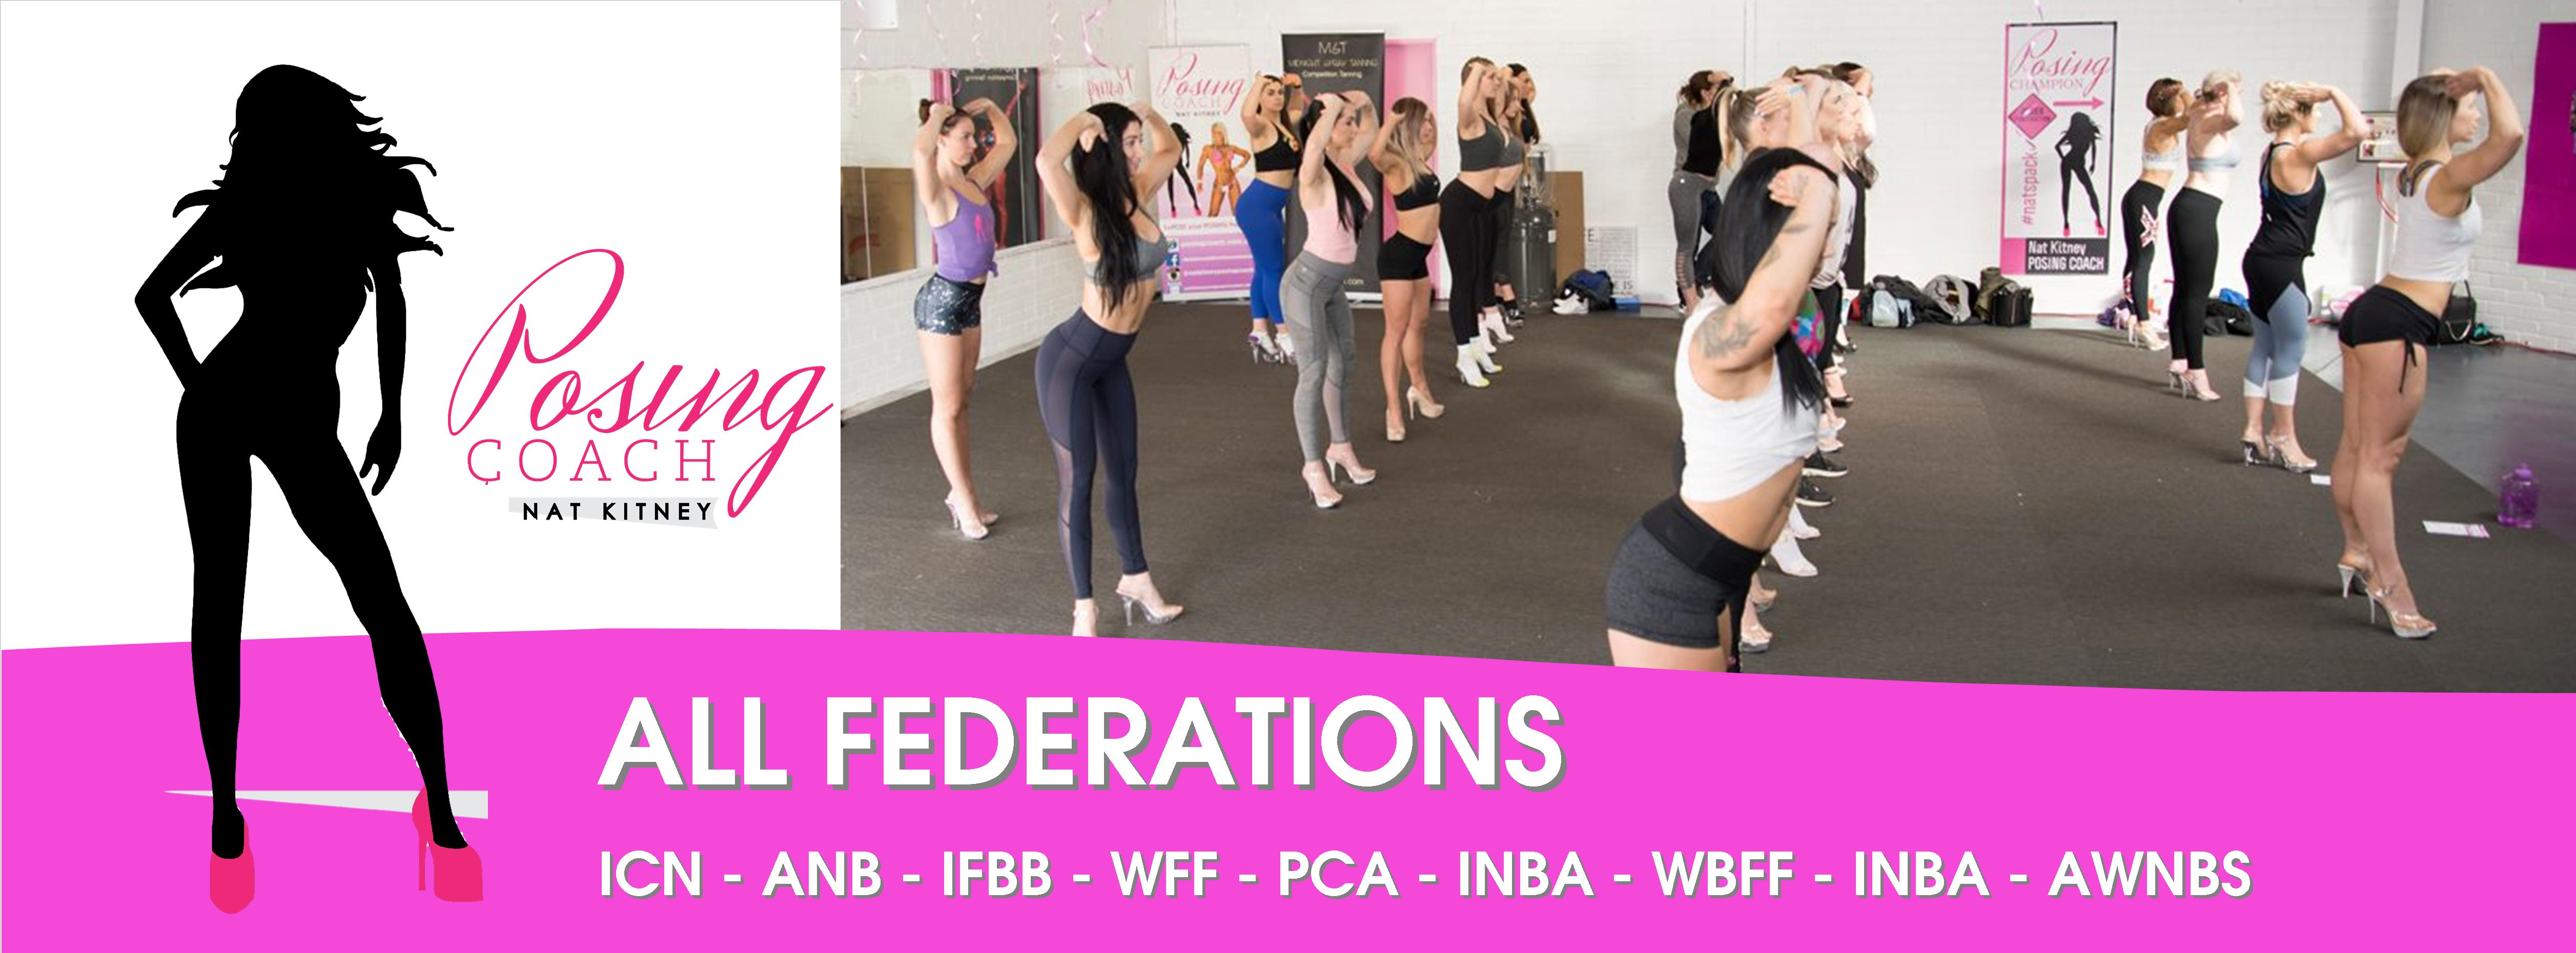 All-federations-3